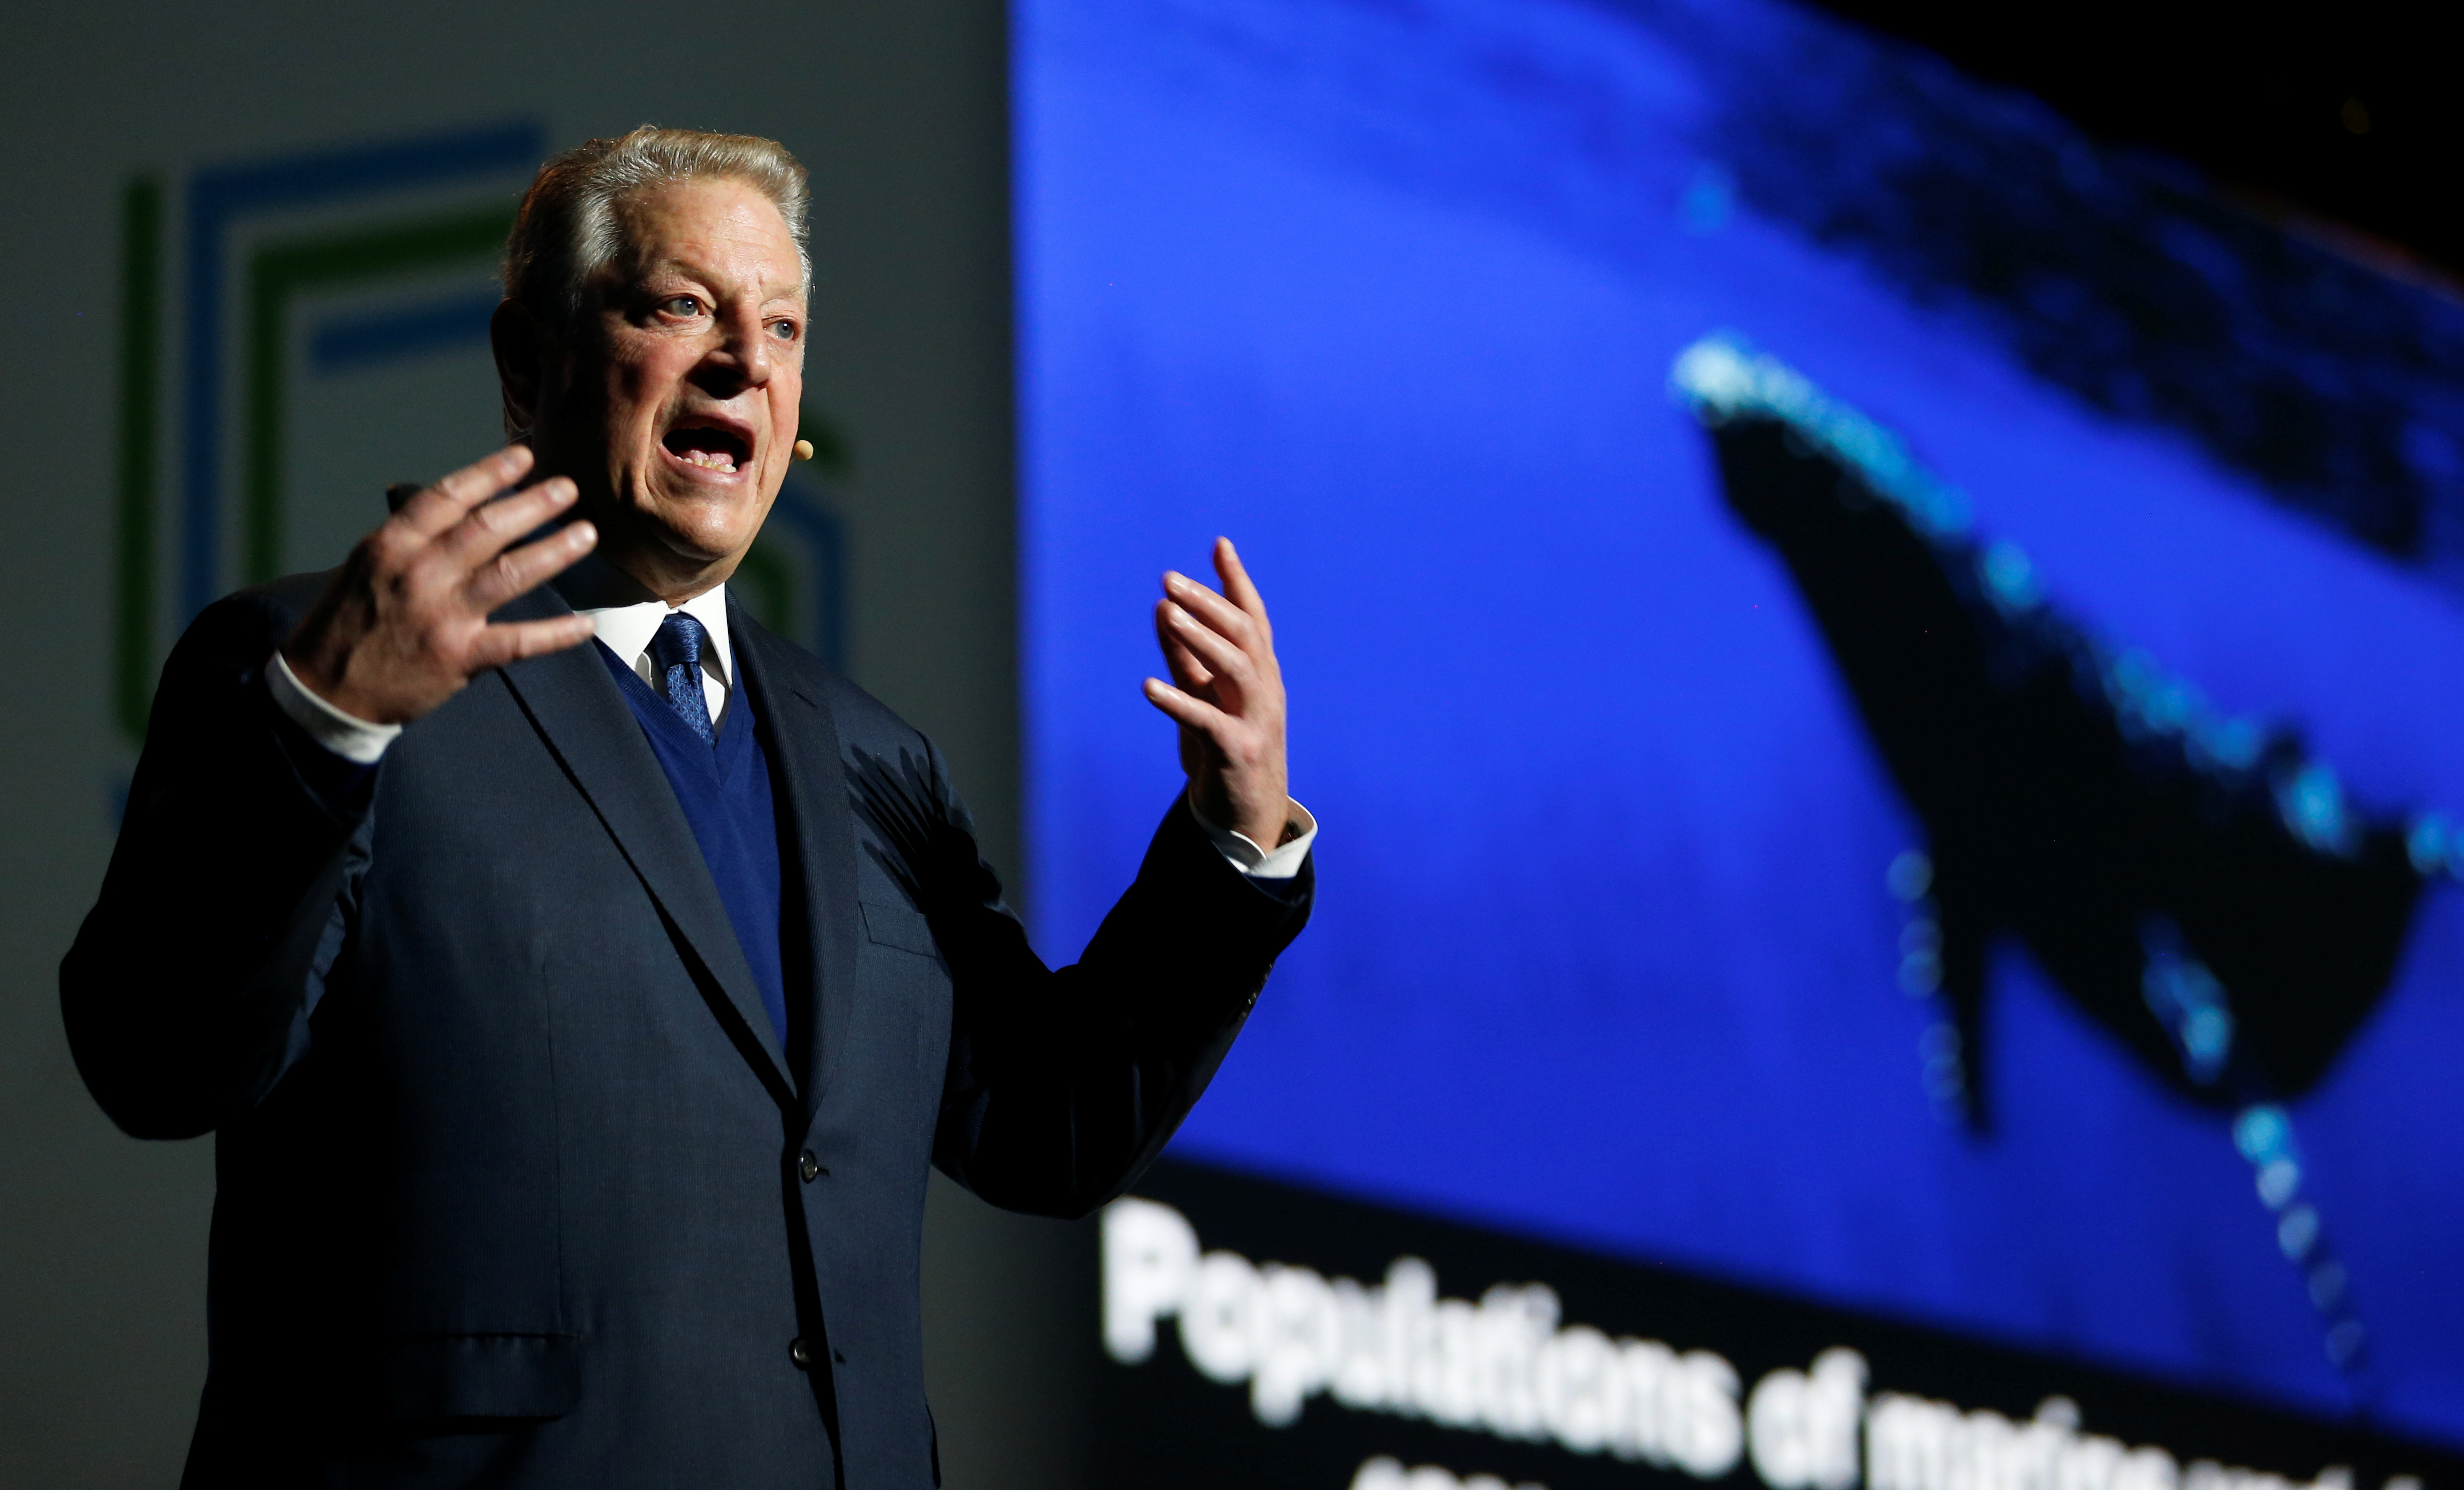 Al Gore, former U.S. Vice President and Climate Reality Project Chairman, speaks at the COP24 UN Climate Change Conference 2018 in Katowice